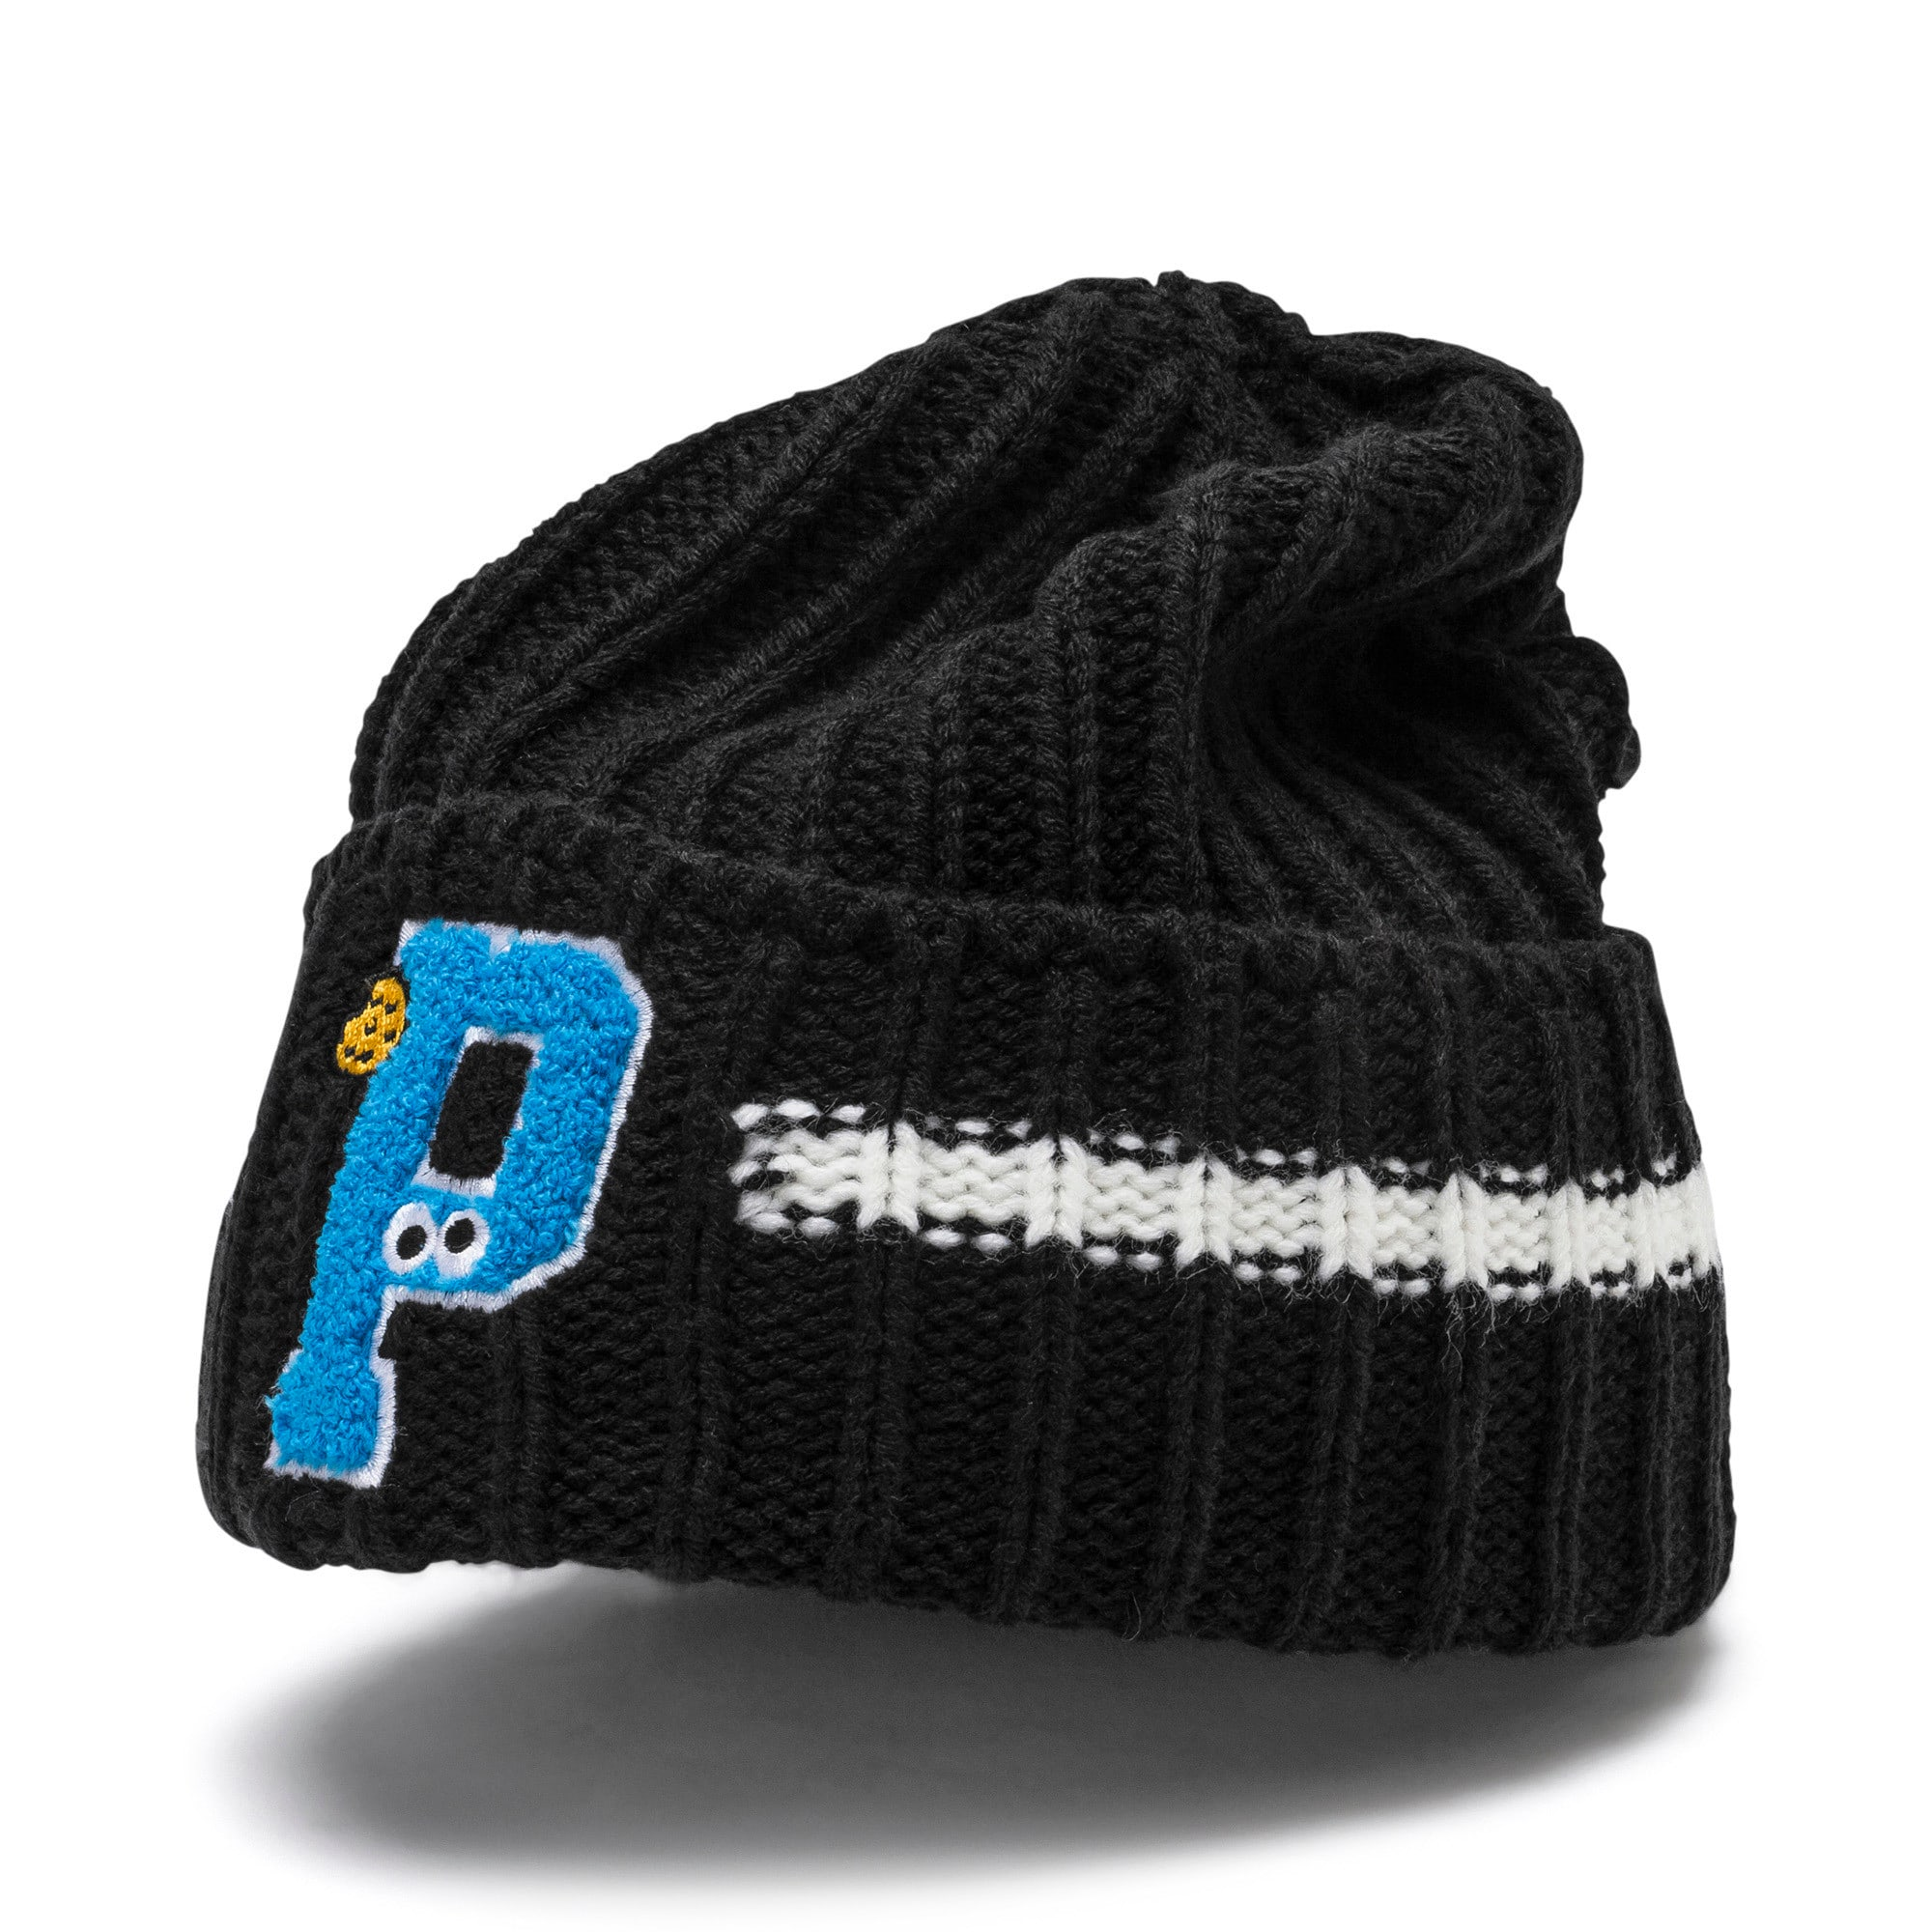 Thumbnail 1 of PUMA x SESAME STREET Kids' Beanie, Puma Black, medium